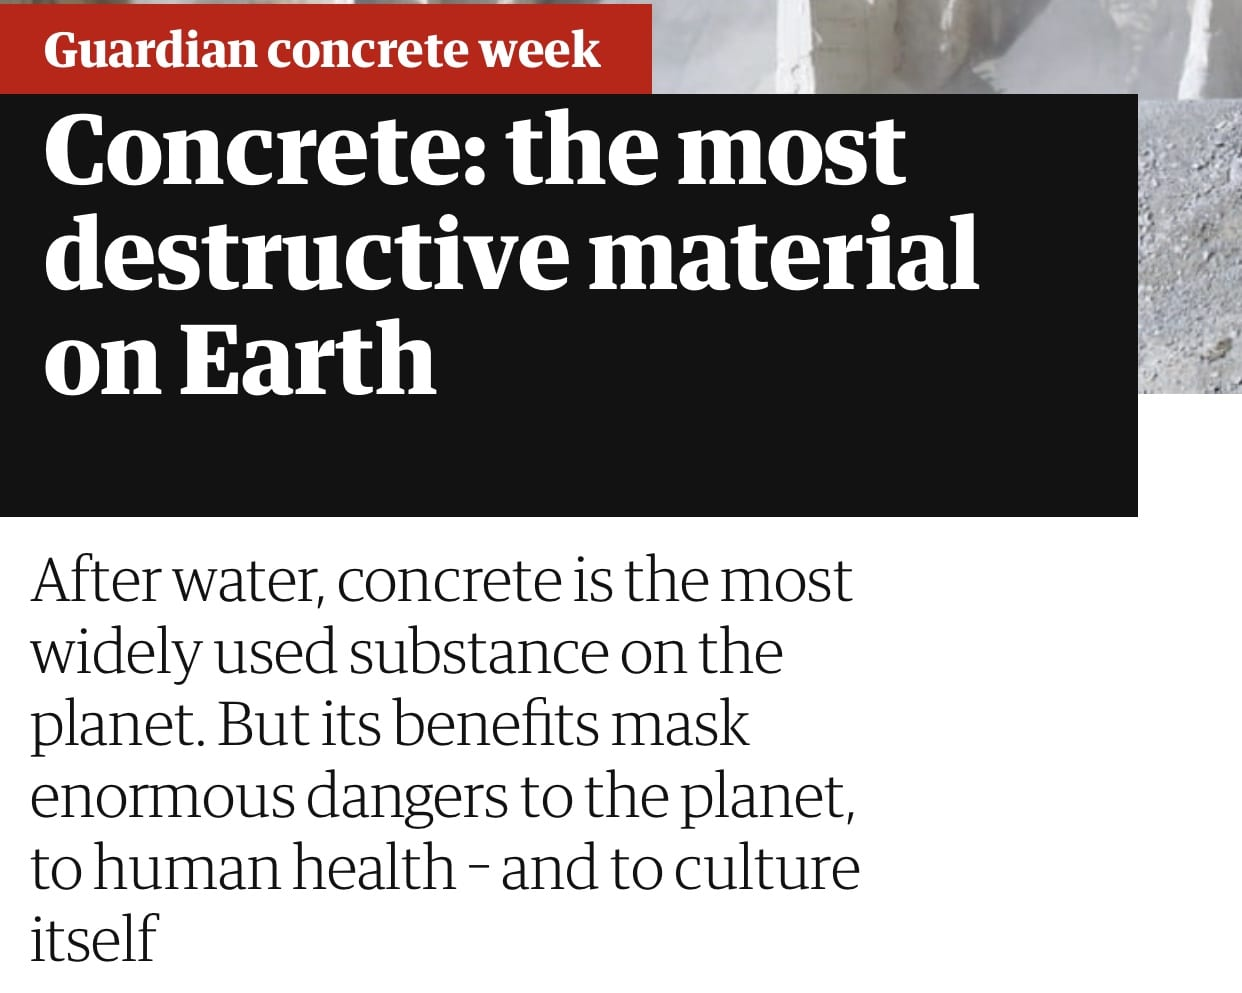 Concrete:the most destructive material on Earth